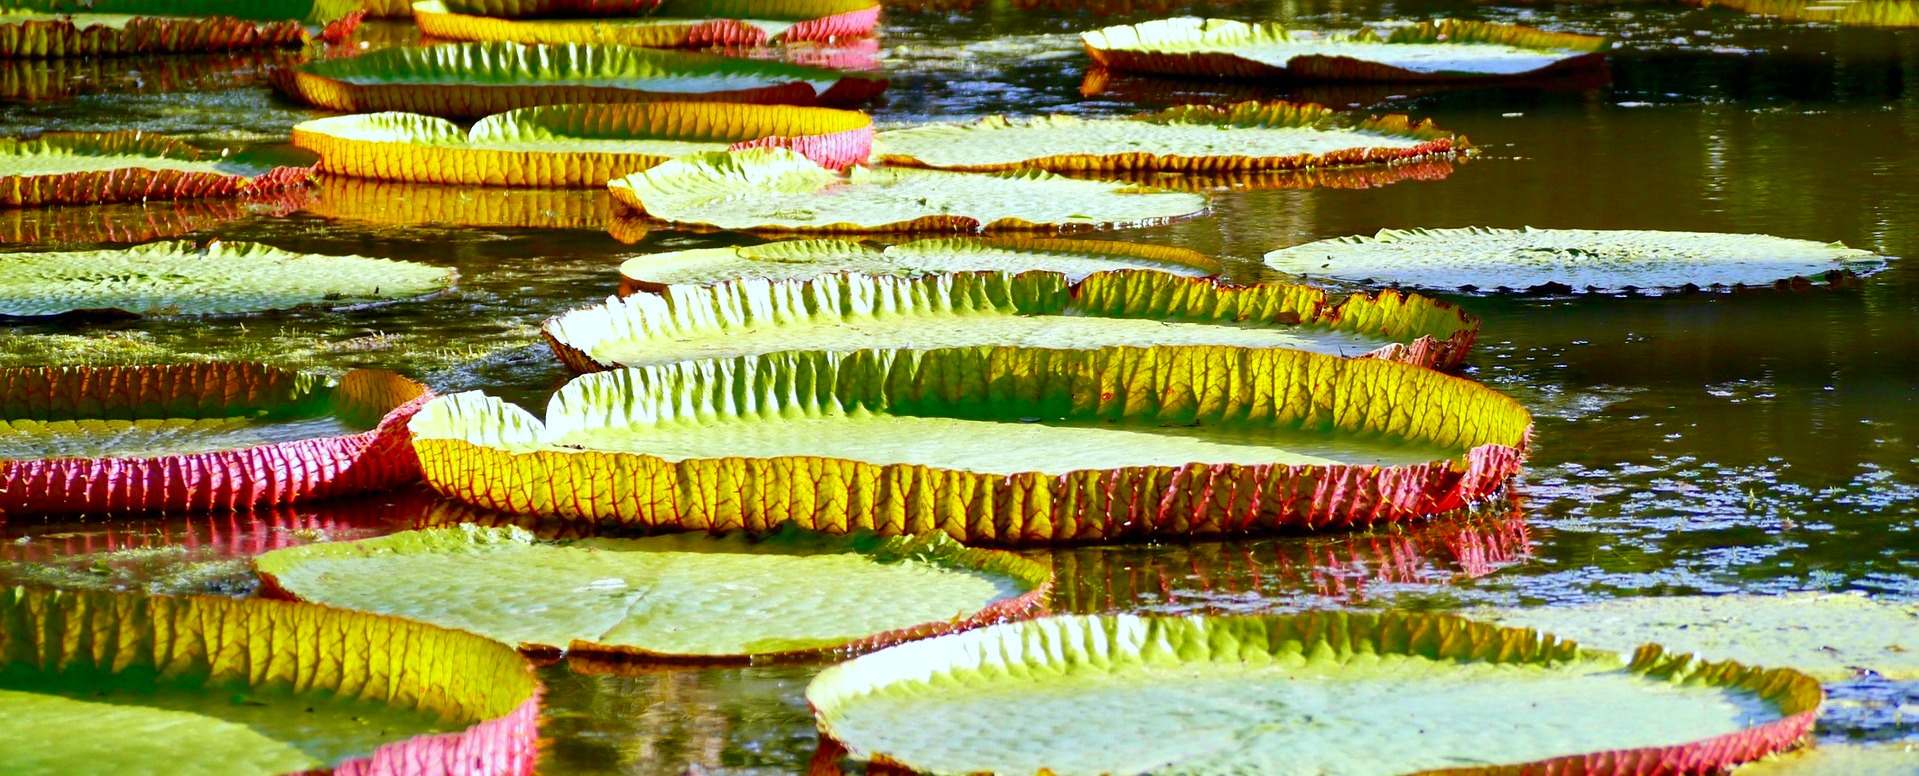 10. Unwind in the Botanical Garden in Pamplemousses - Mauritius